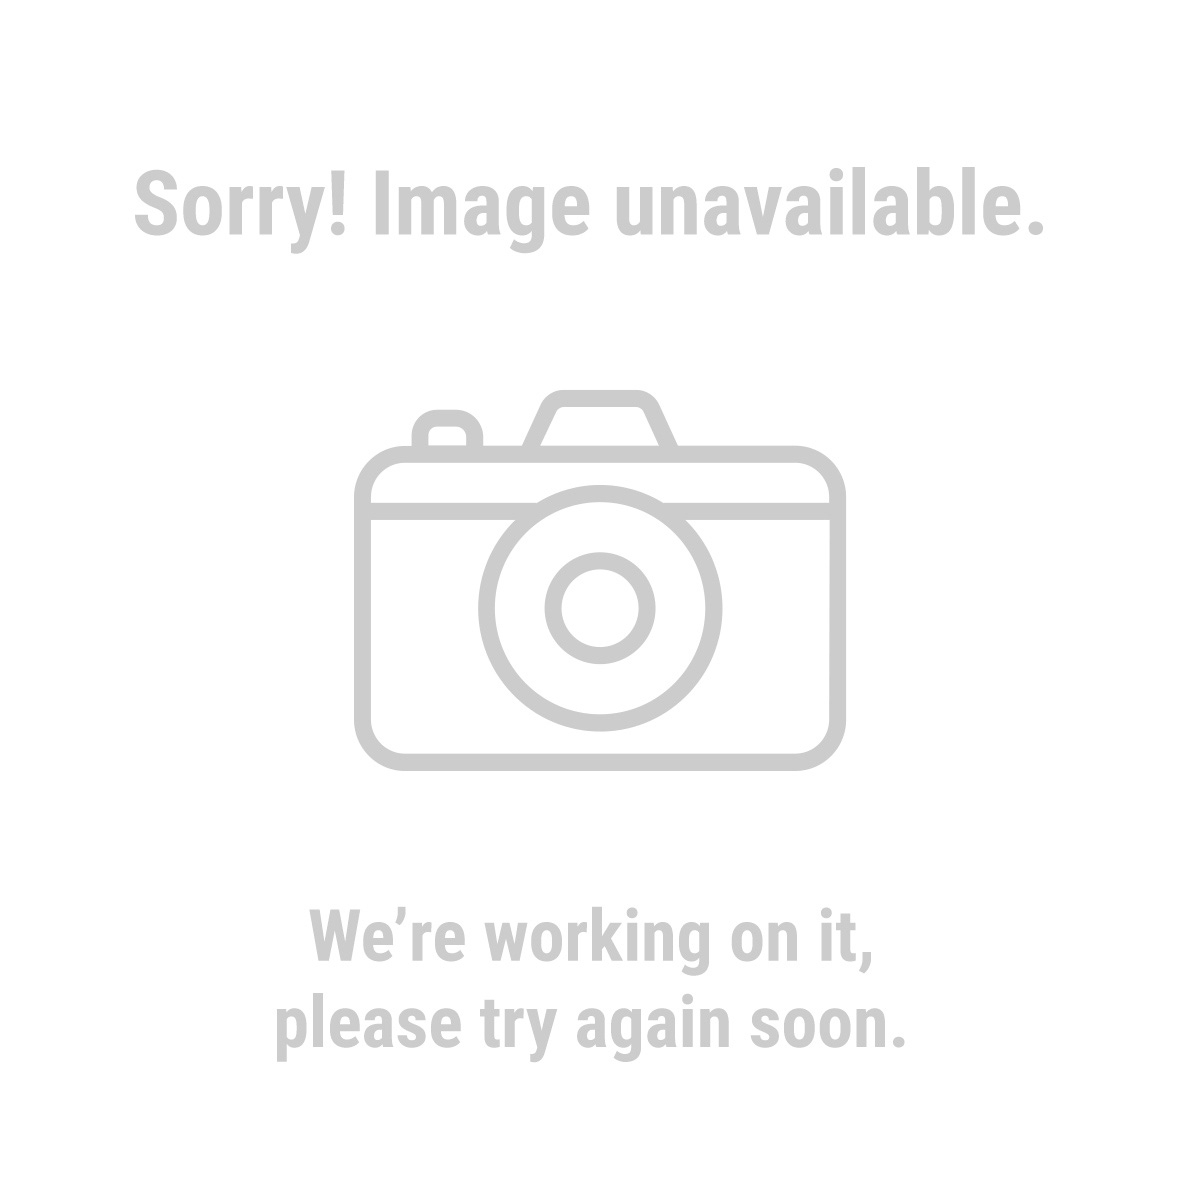 floor drill press 16 speed floor drill press